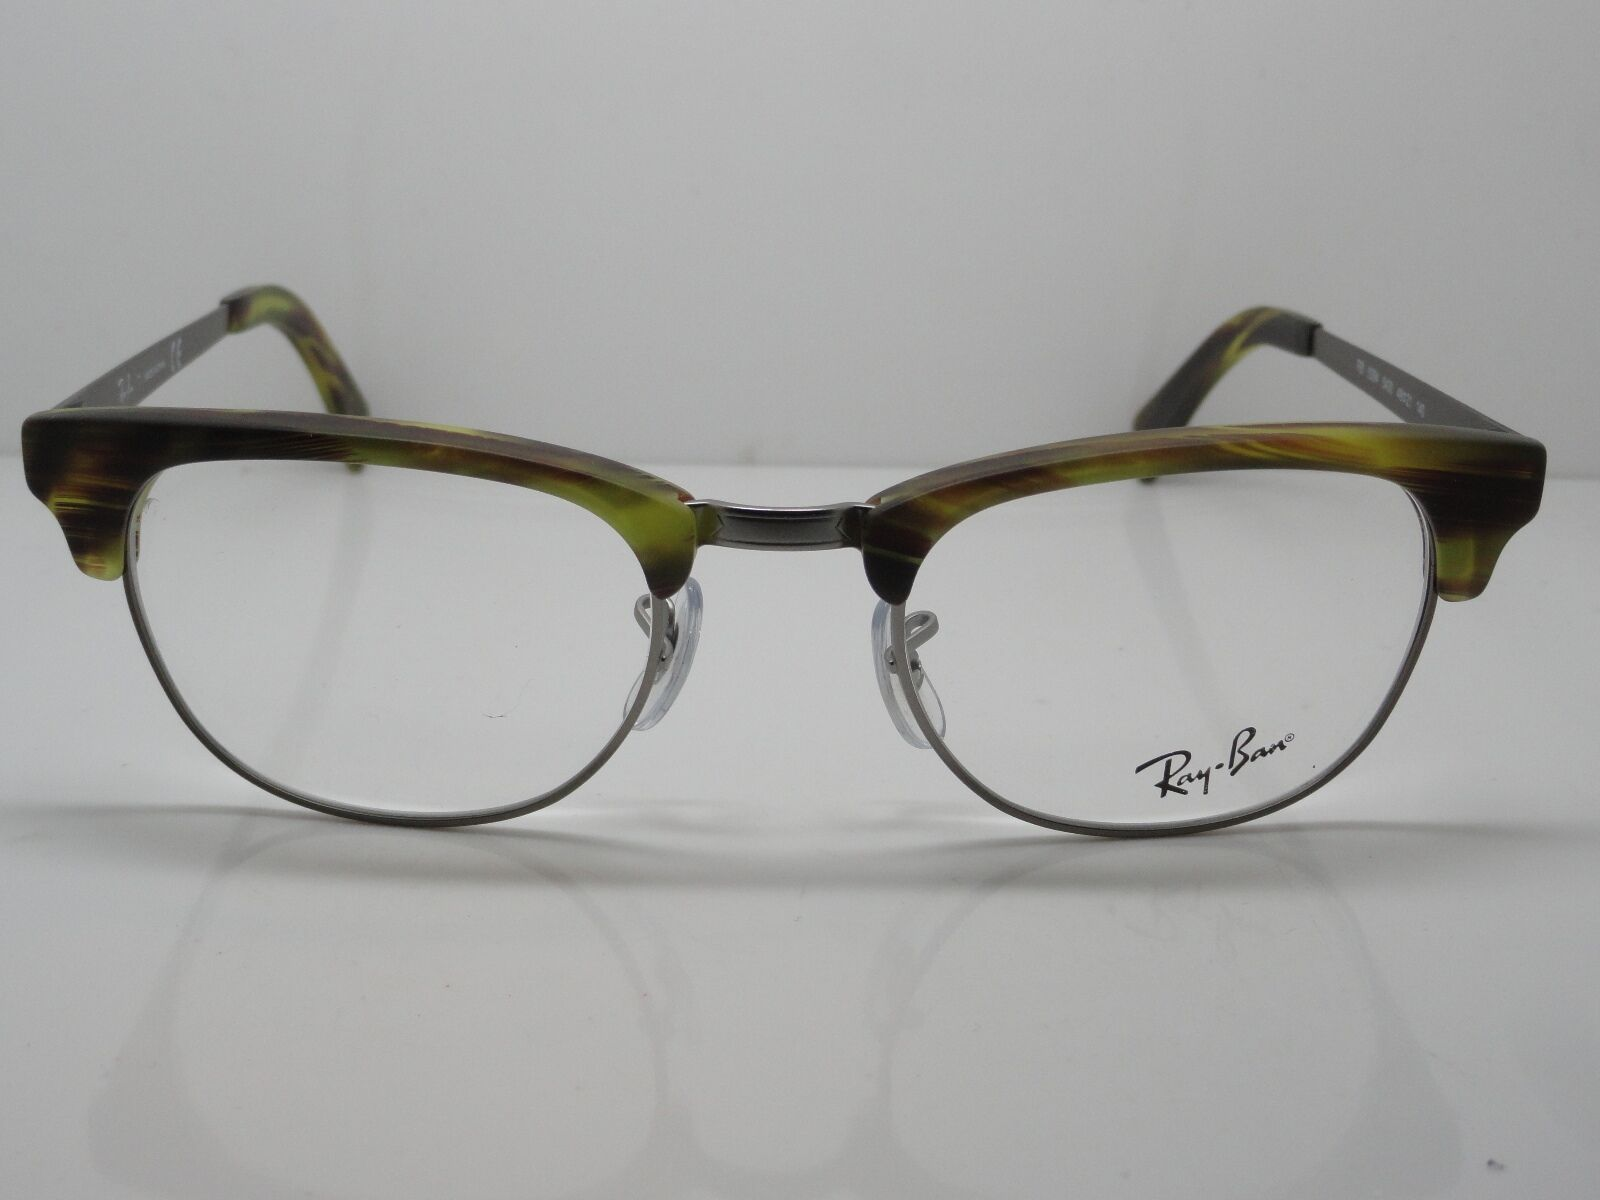 dec48c65a1 NEW Ray Ban RB 5294 5430 Green Havana Gunmetal Clubmaster 49mm RX Eyeglasses